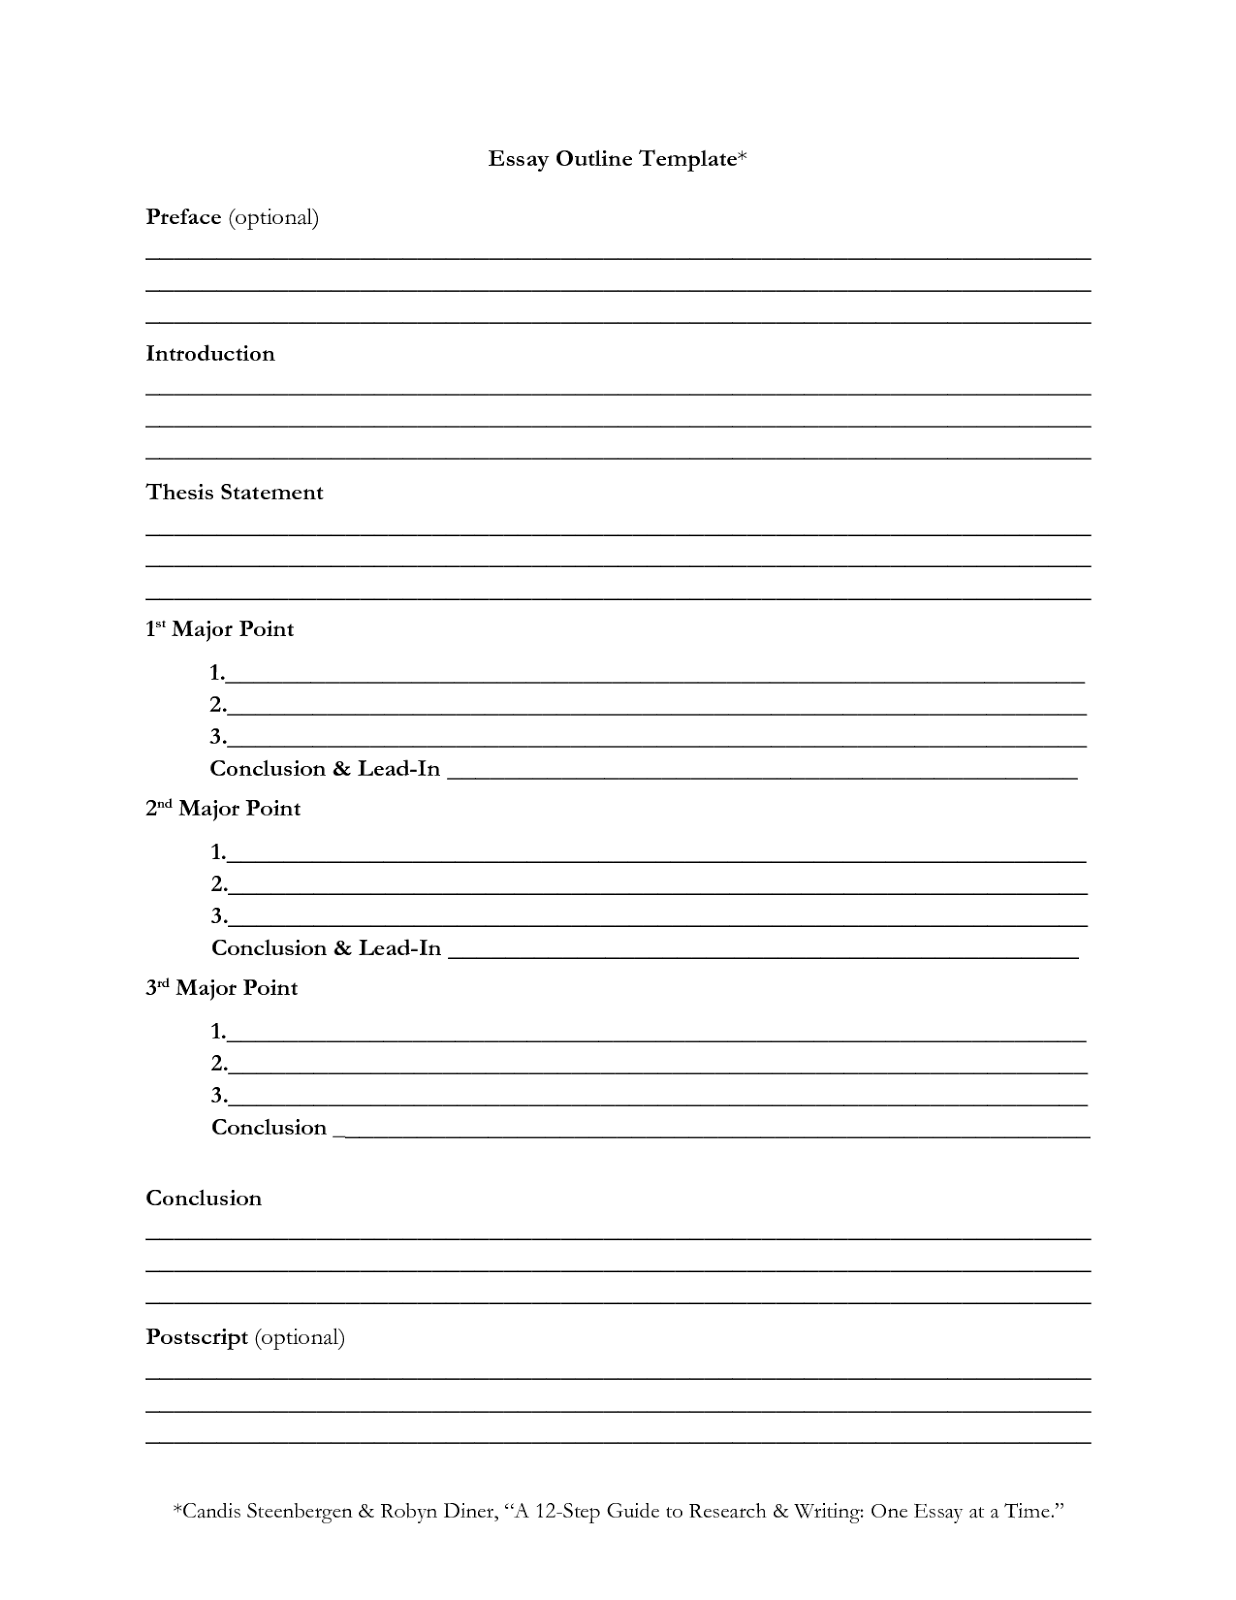 013 Outlinetemplate Basic Outline Format For Research Breathtaking Paper Sentence College Simple Sample Full